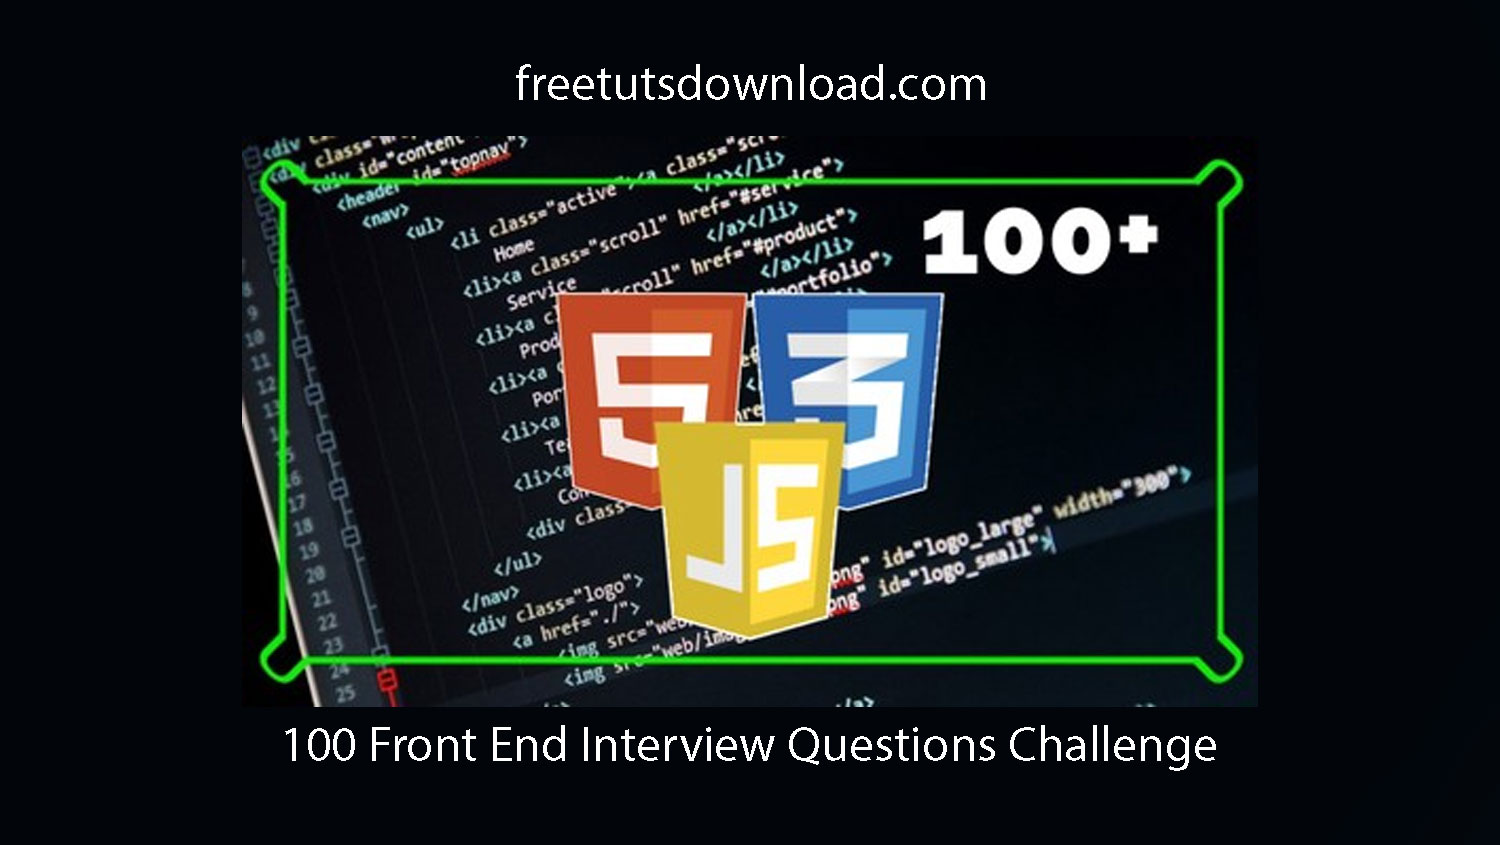 100 Front End Interview Questions Challenge